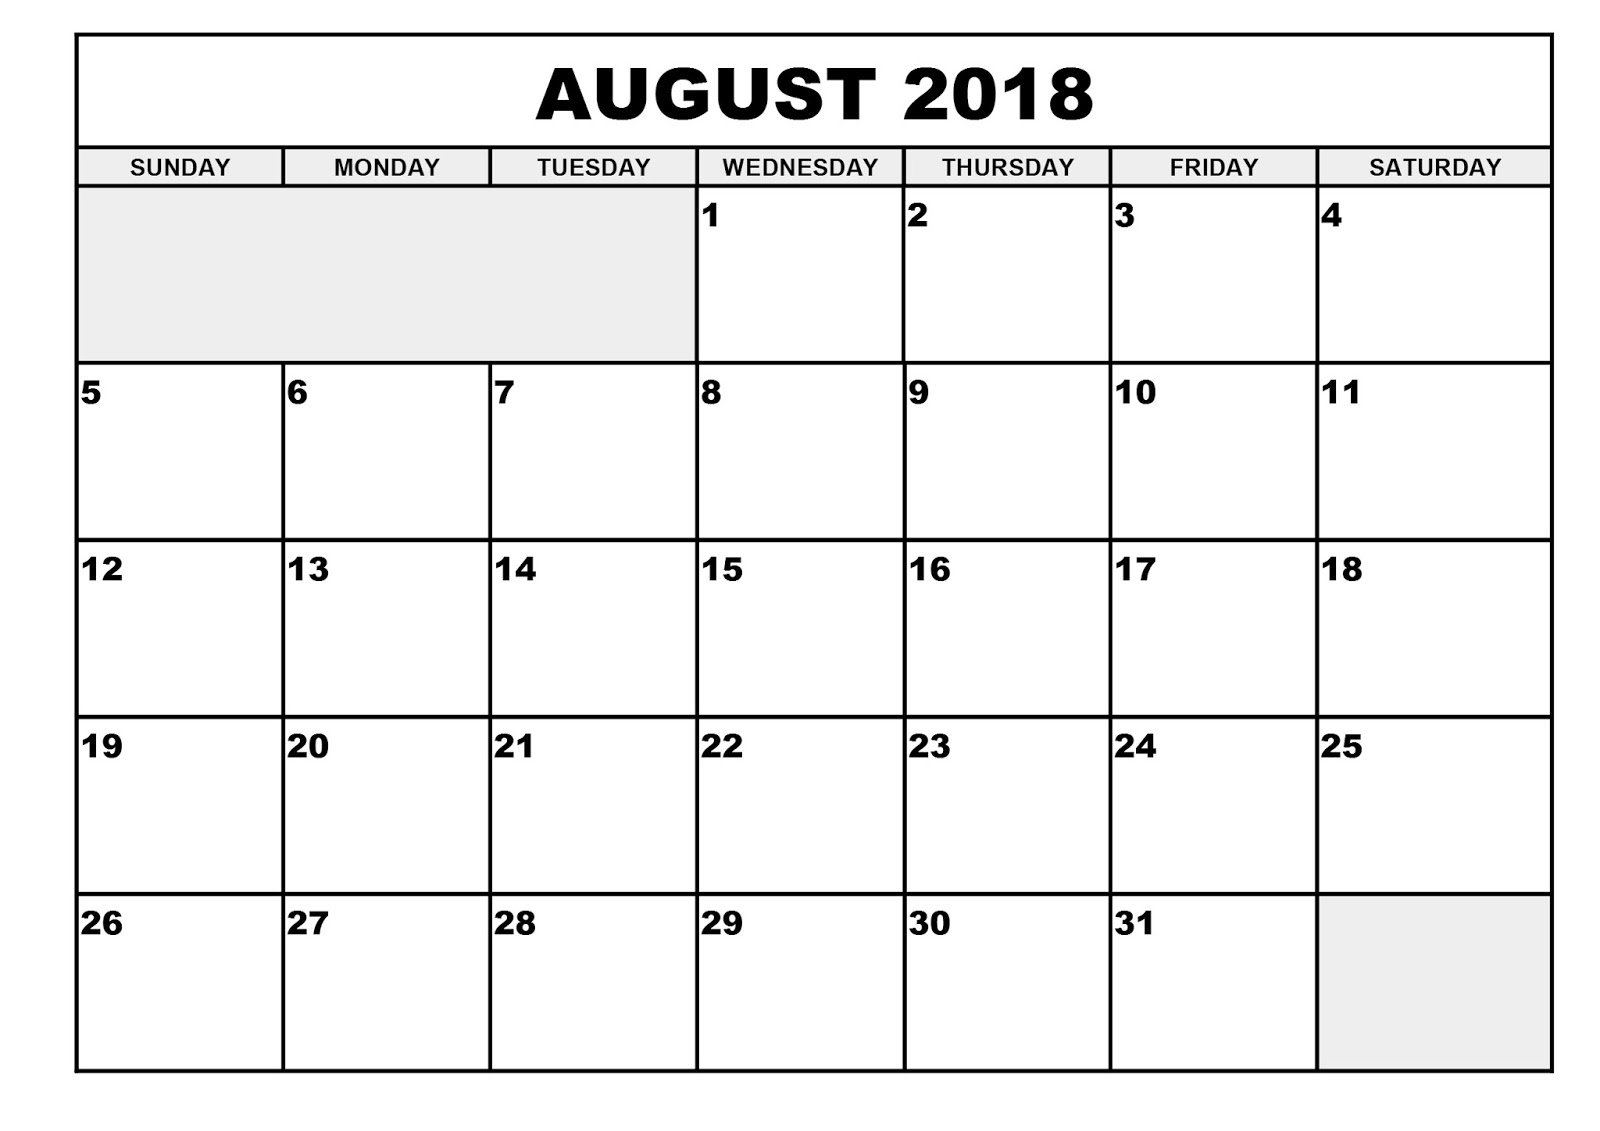 August 2018 Printable Calendar Templates pertaining to Blank Calendar To Write On August